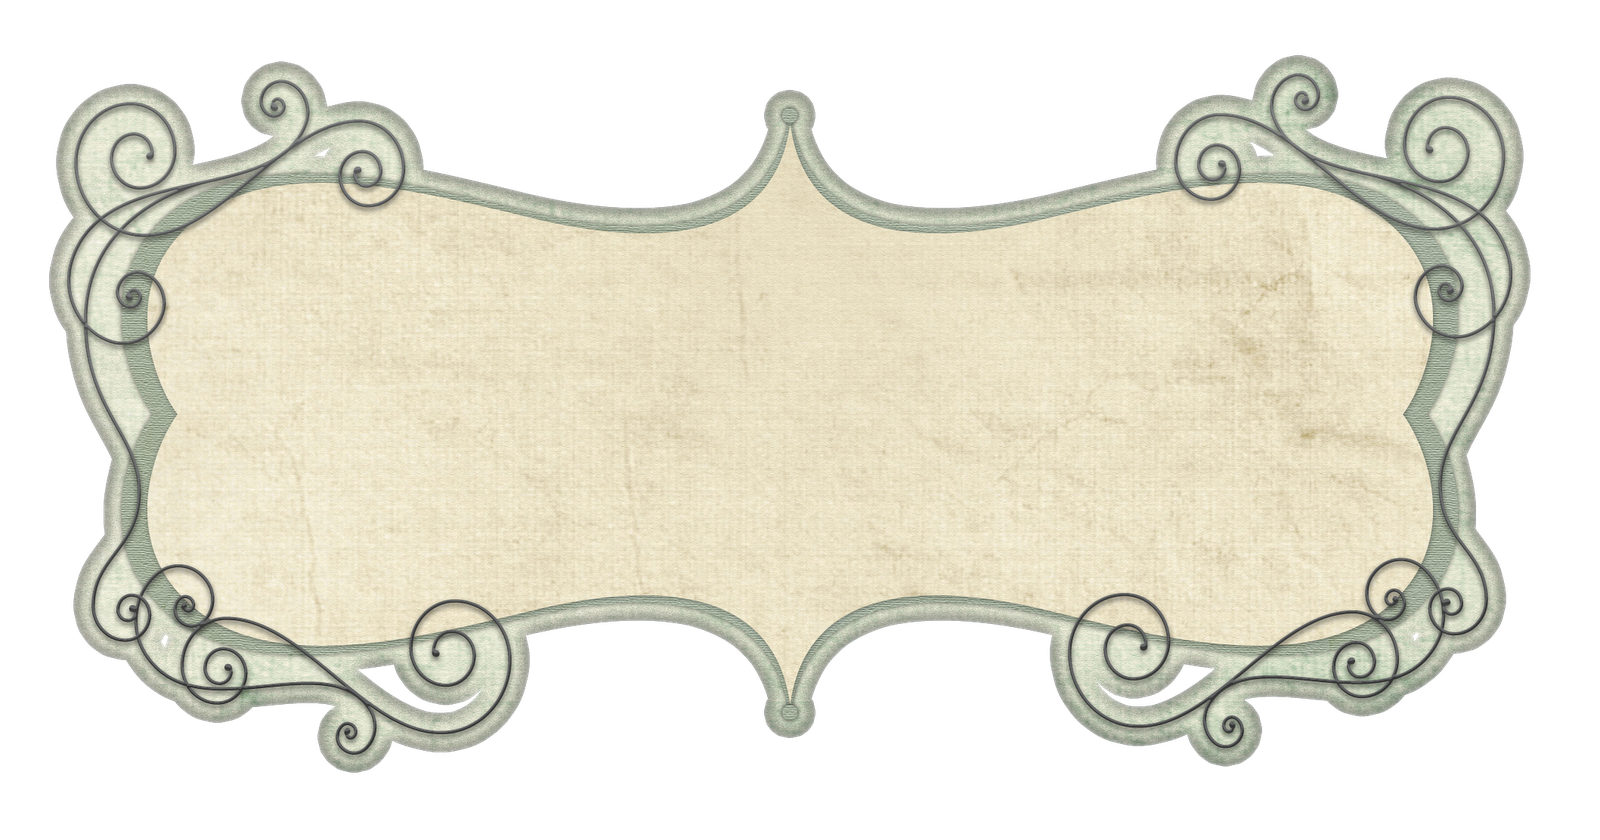 Free Cu Doodle Frame Border Template And Paper Textures